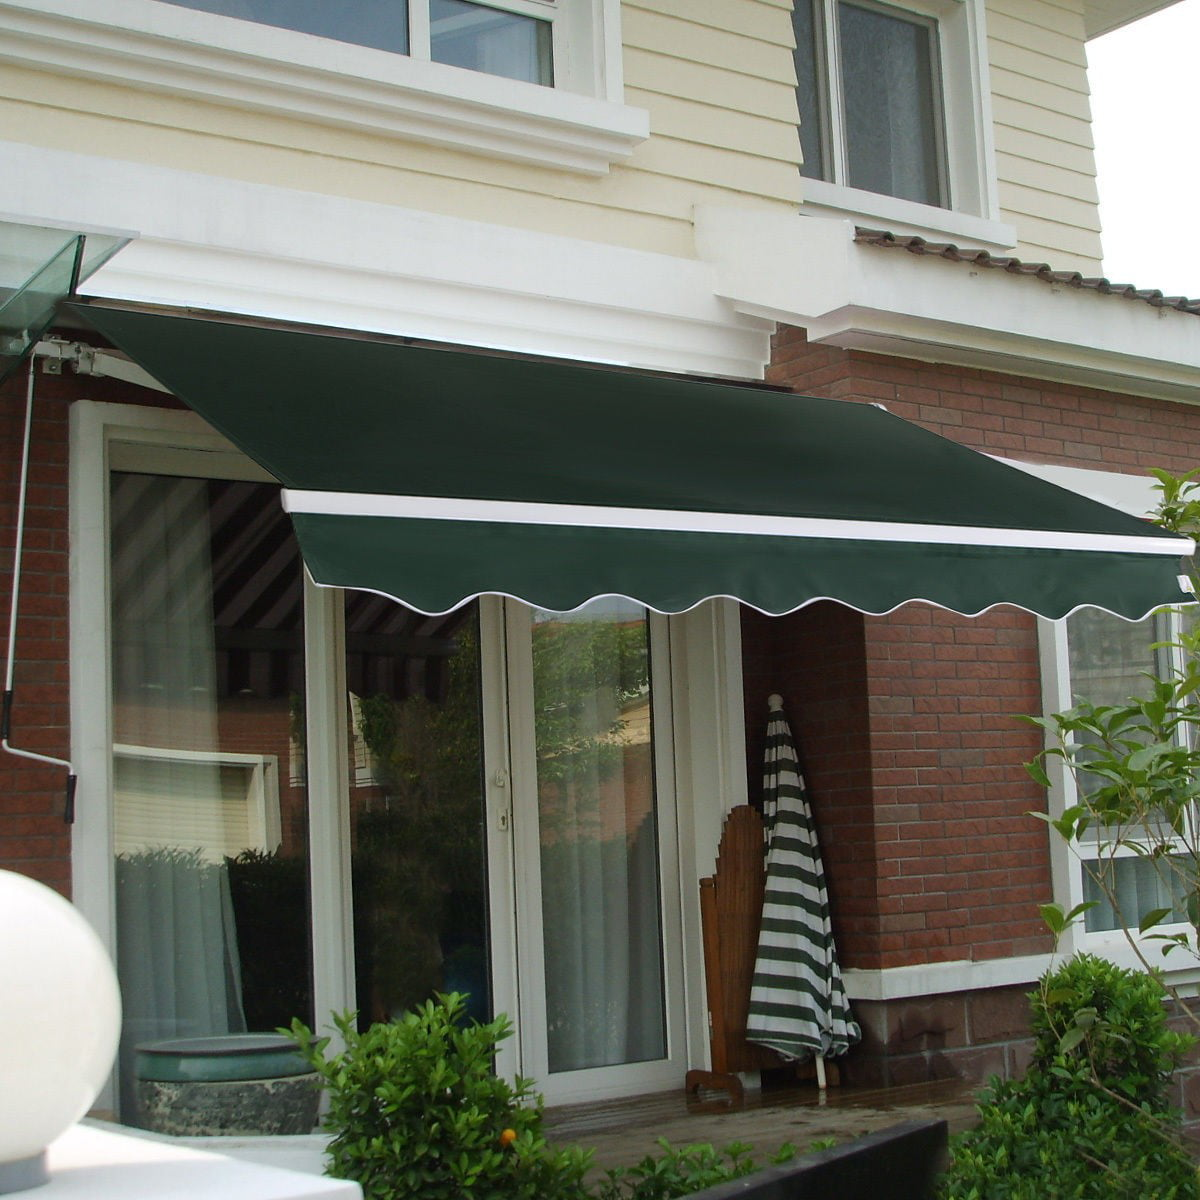 Manual Patio 8.2' x 6.5' Retractable Deck Awning Sunshade ...